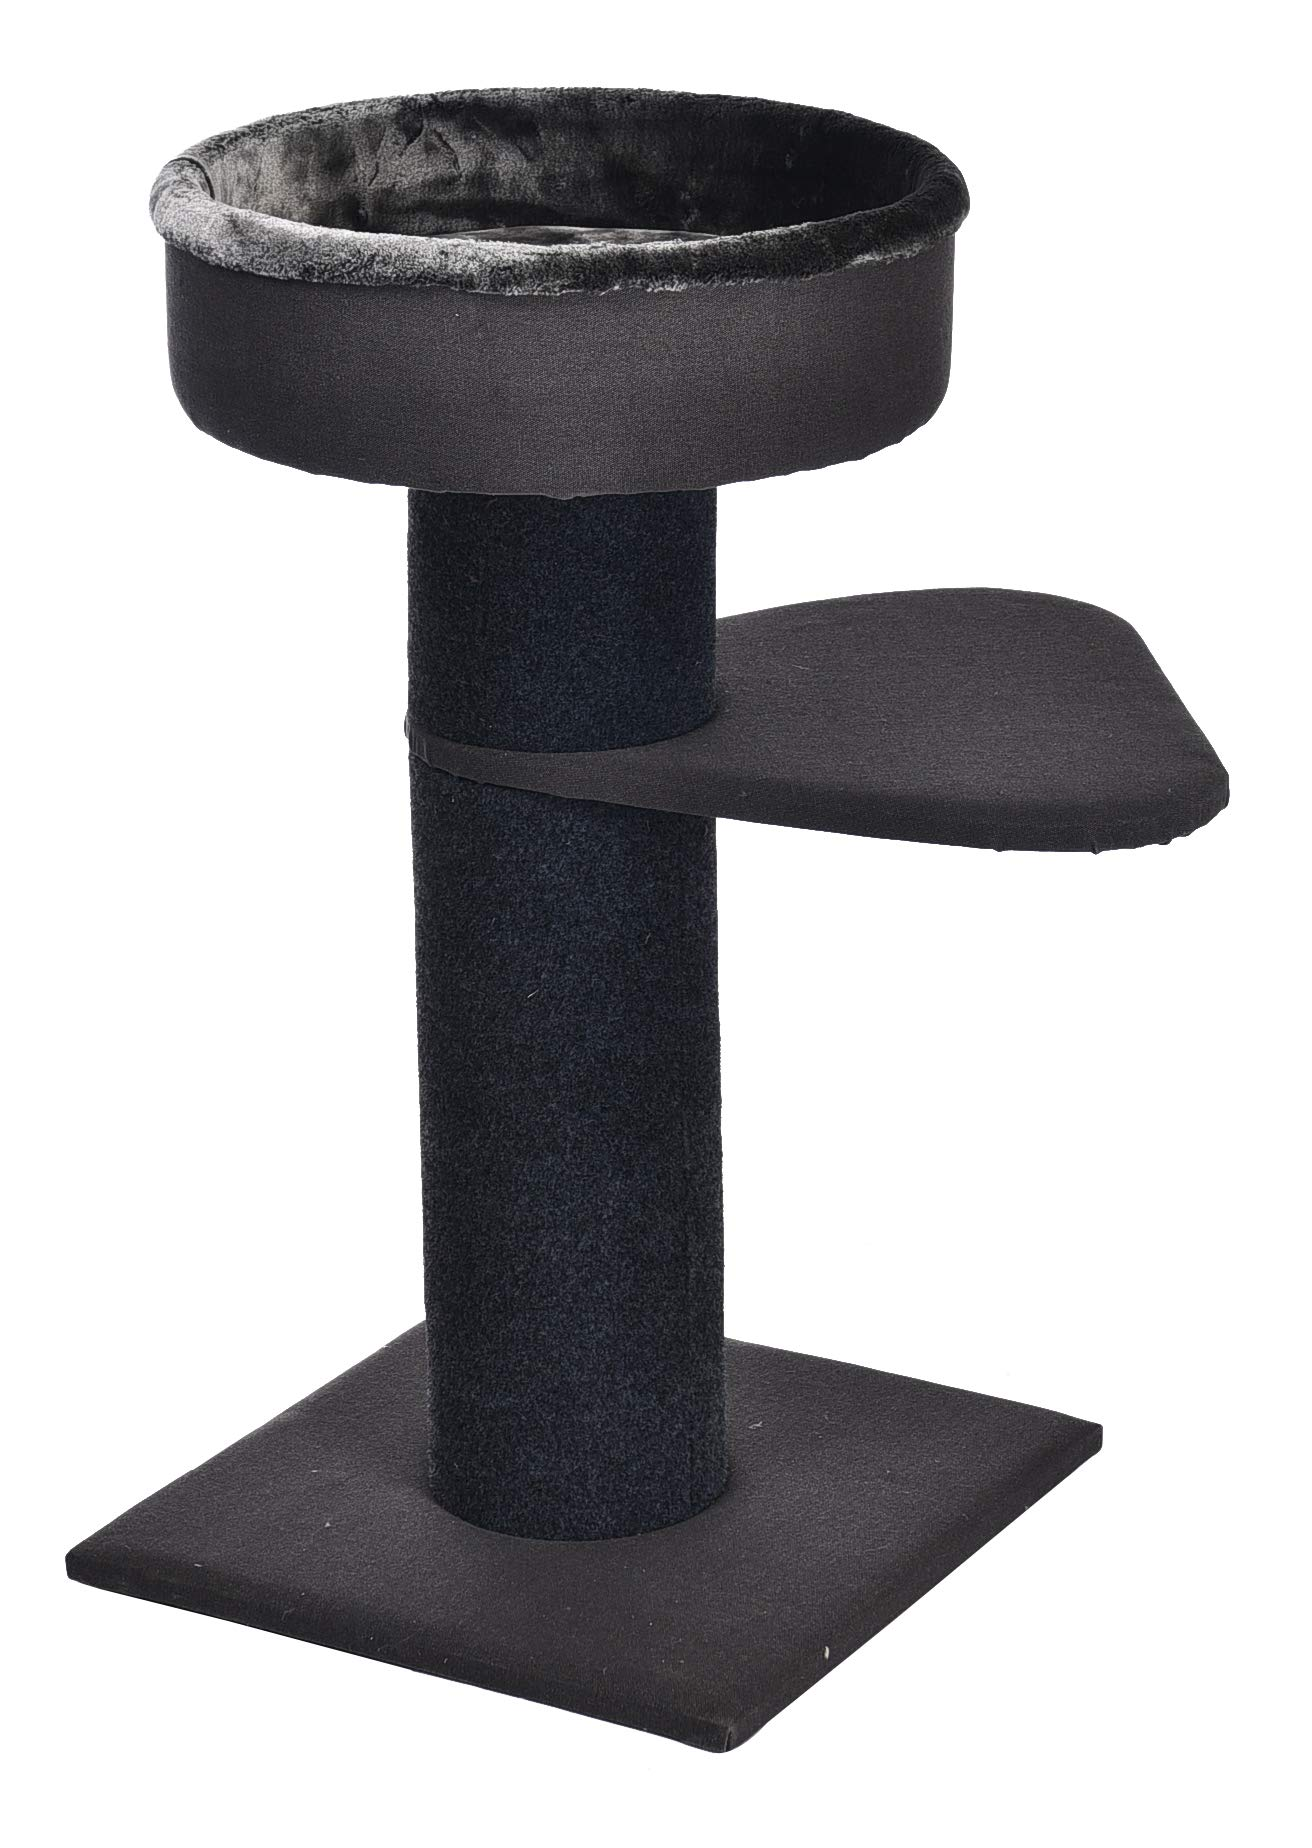 AmazonBasics Two Tier Cat Condo Tree Tower With Premium Hard-Side Bedding - 19 x 19 x 34 Inches, Black by AmazonBasics